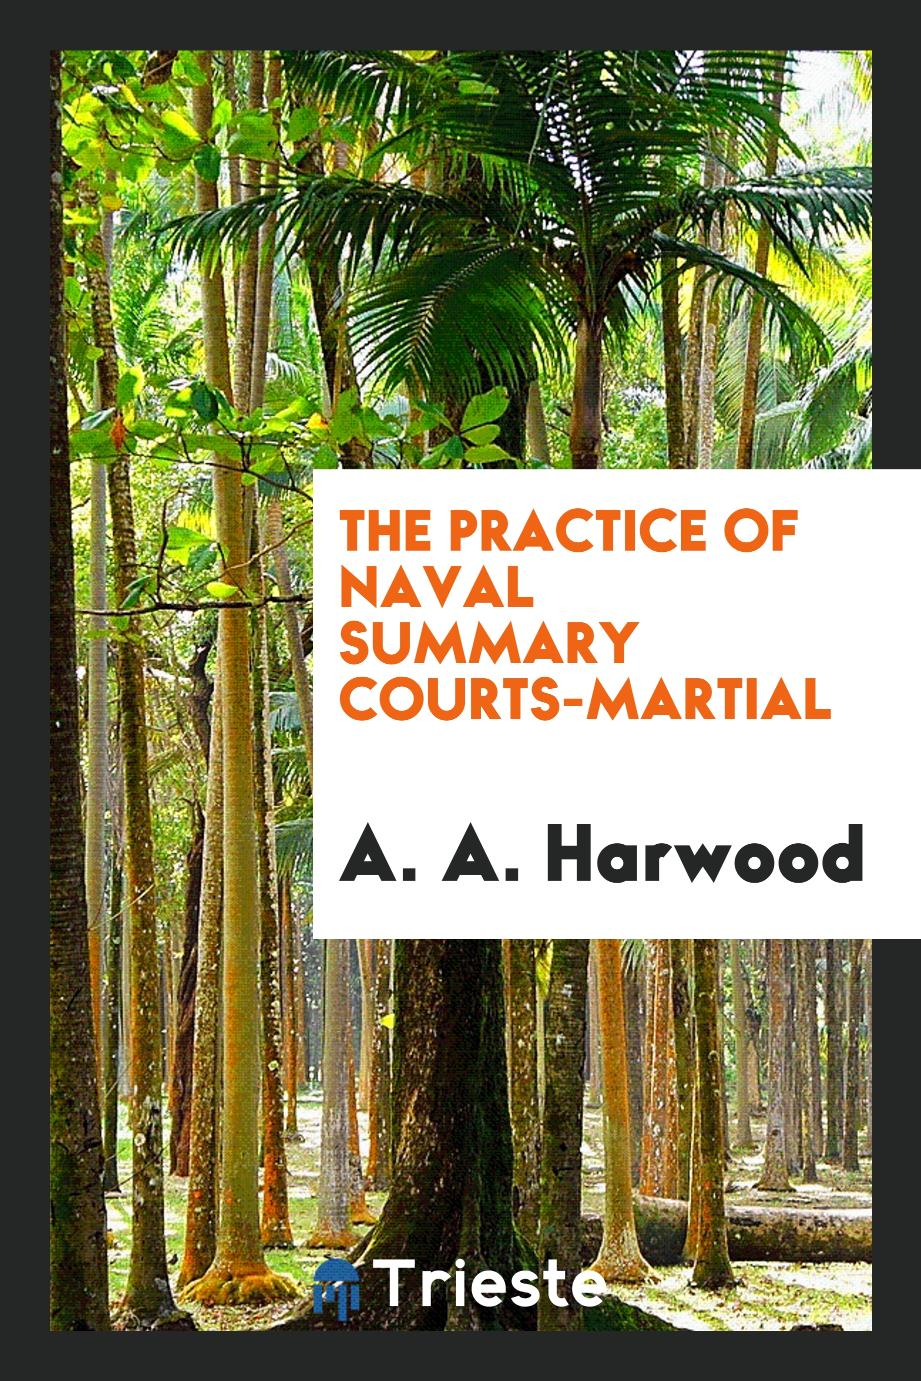 The Practice of Naval Summary Courts-martial